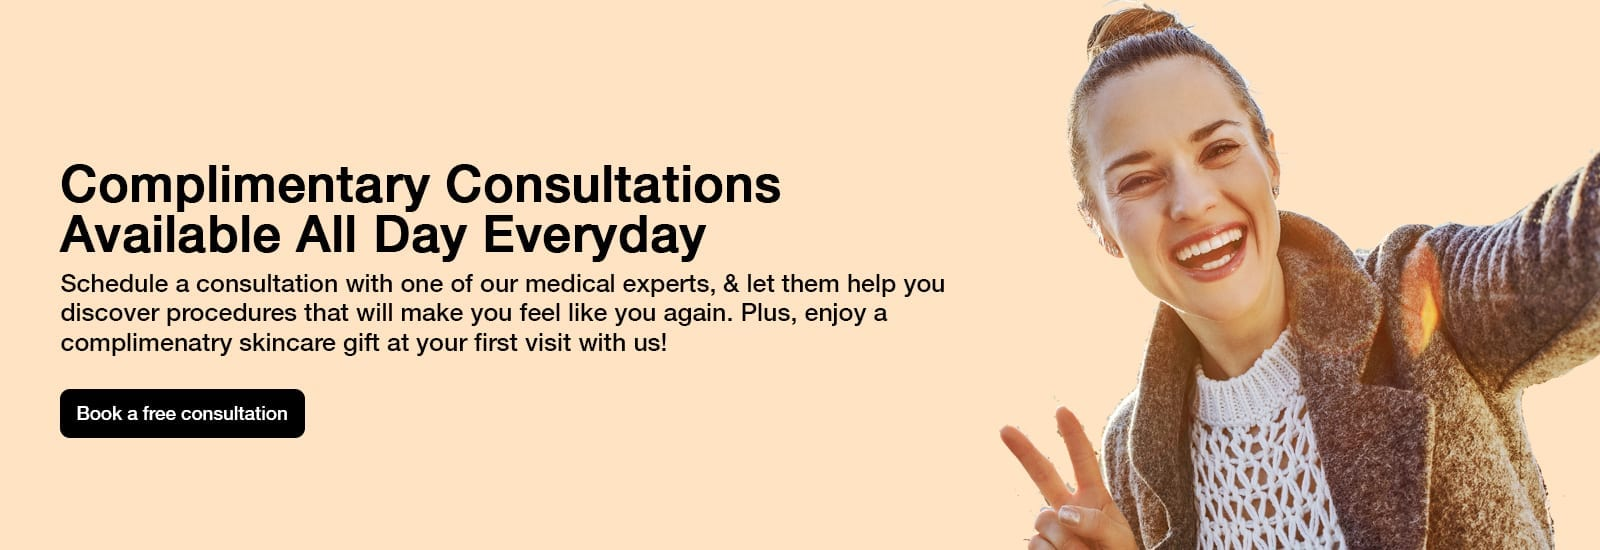 Complimentary Consultations Available All Day Everyday